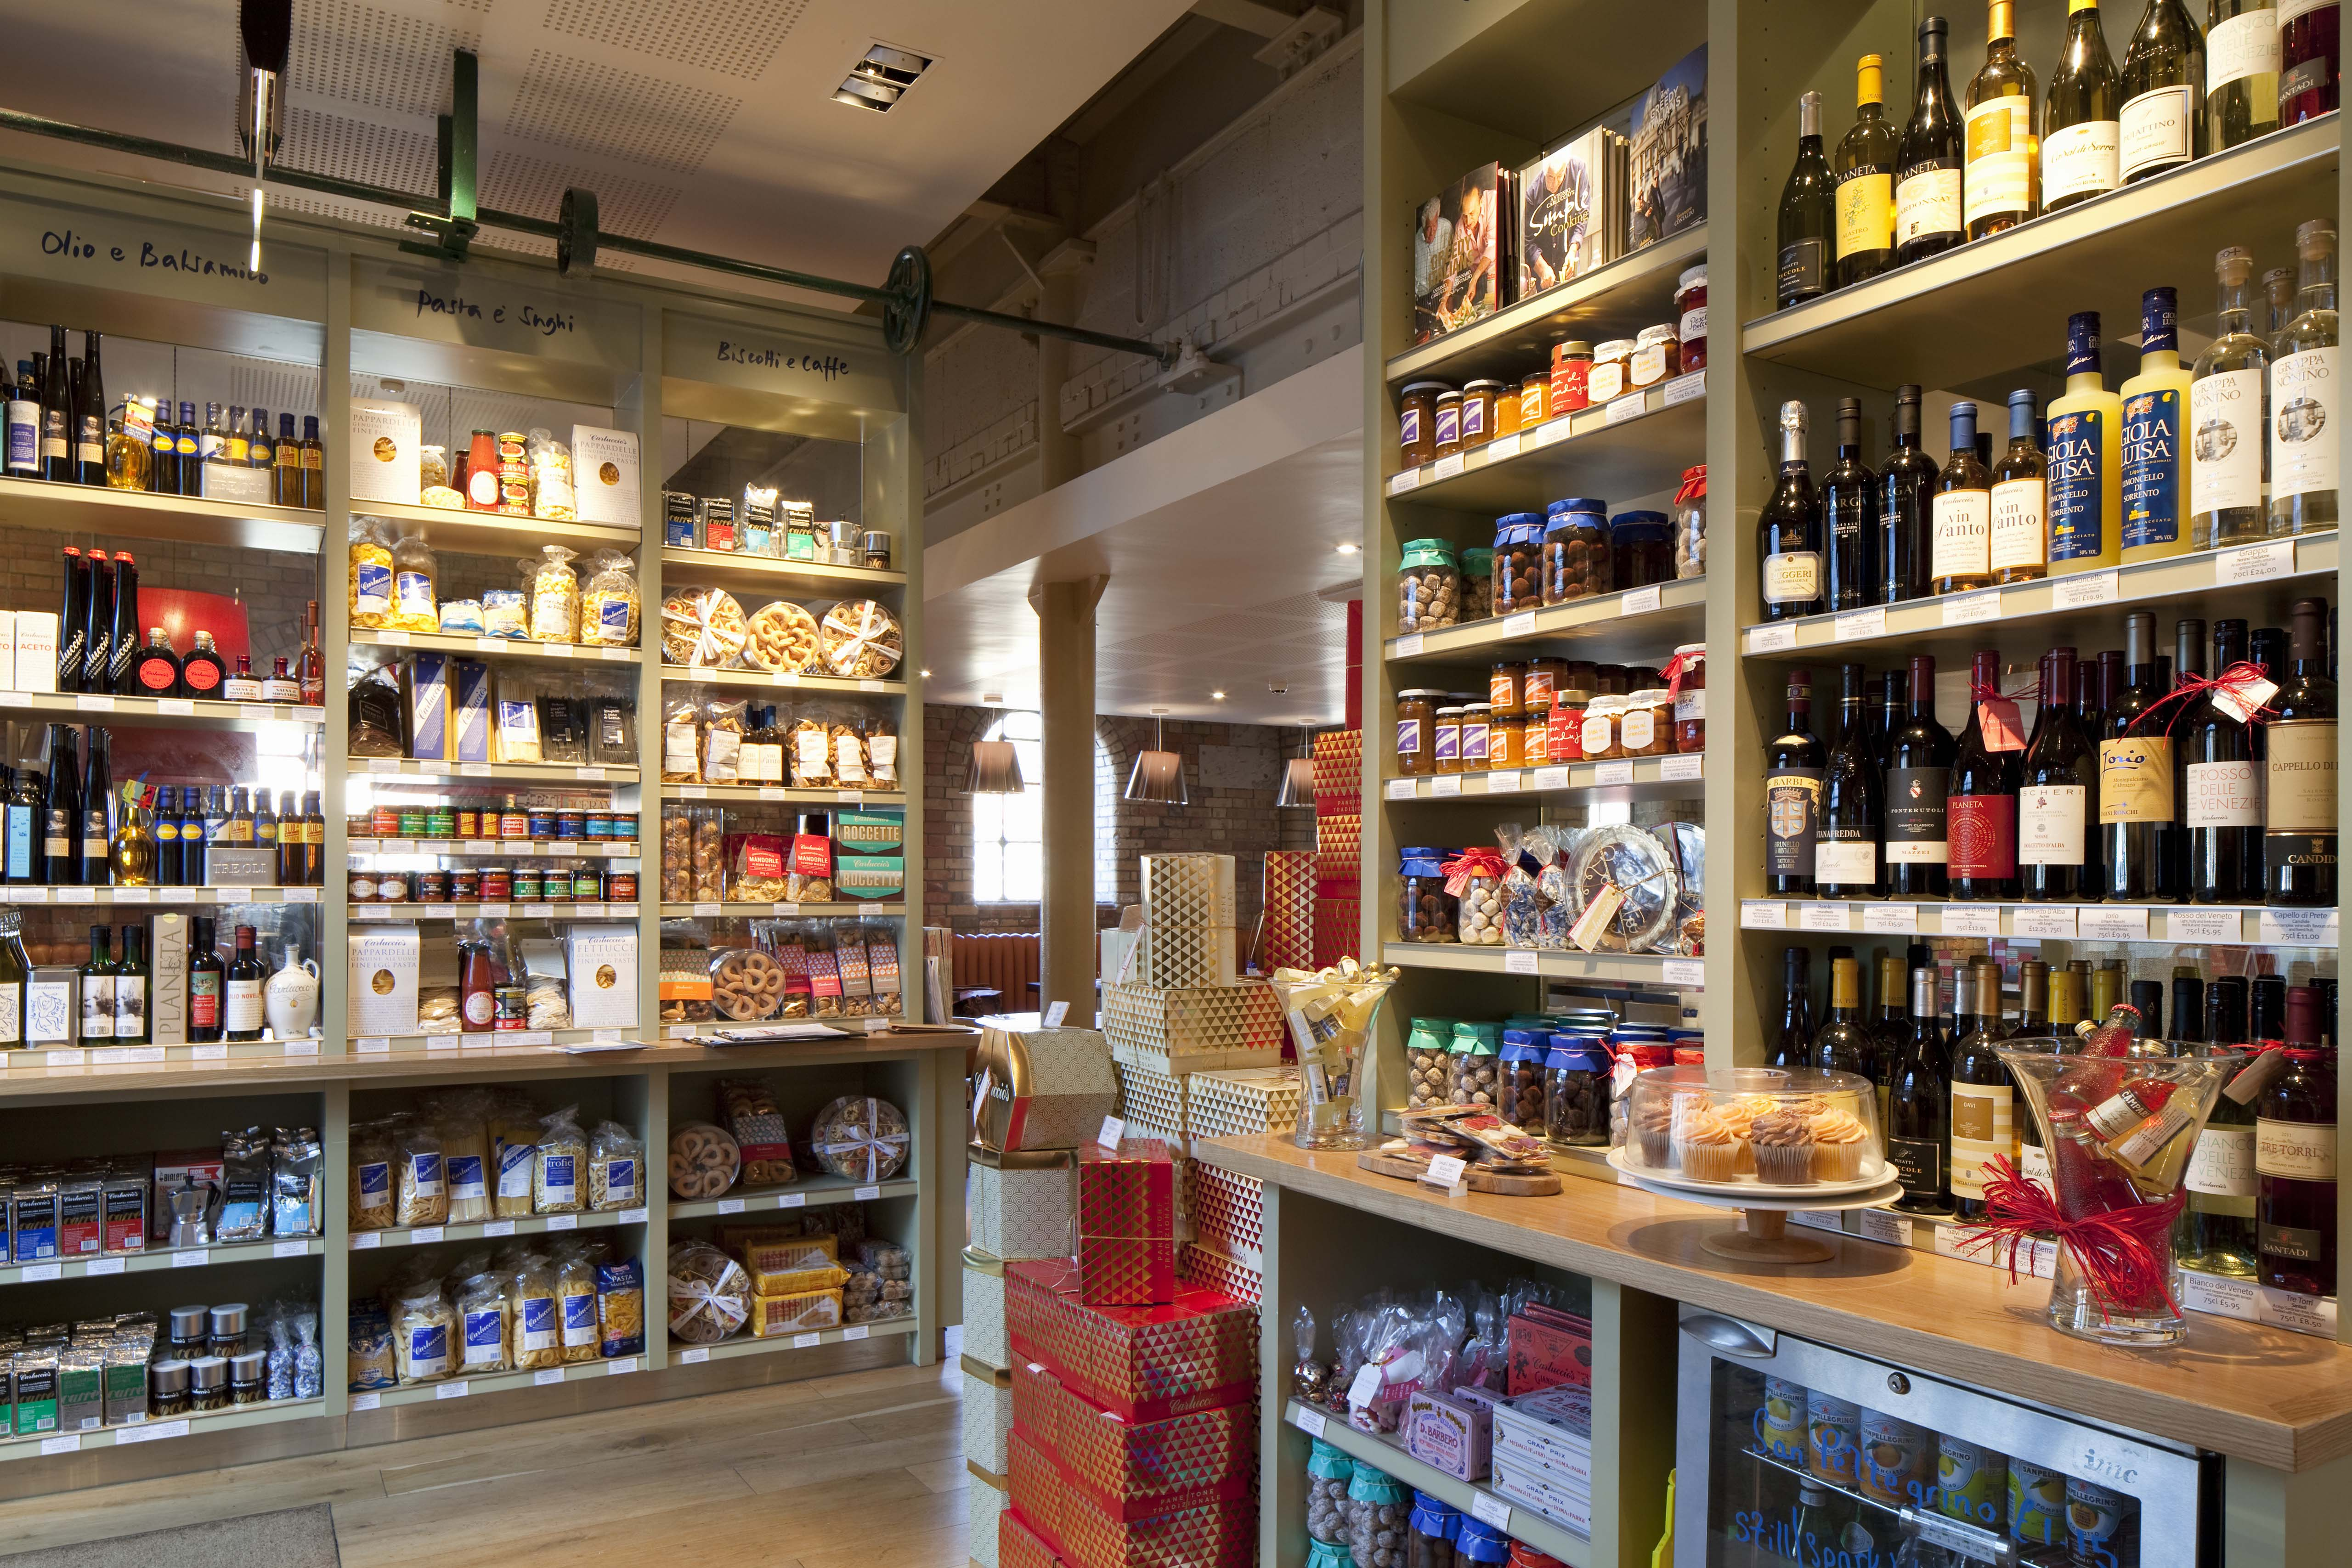 Famous Carluccio's Italian market and restaurant opens in Old Town, first in the U.S.